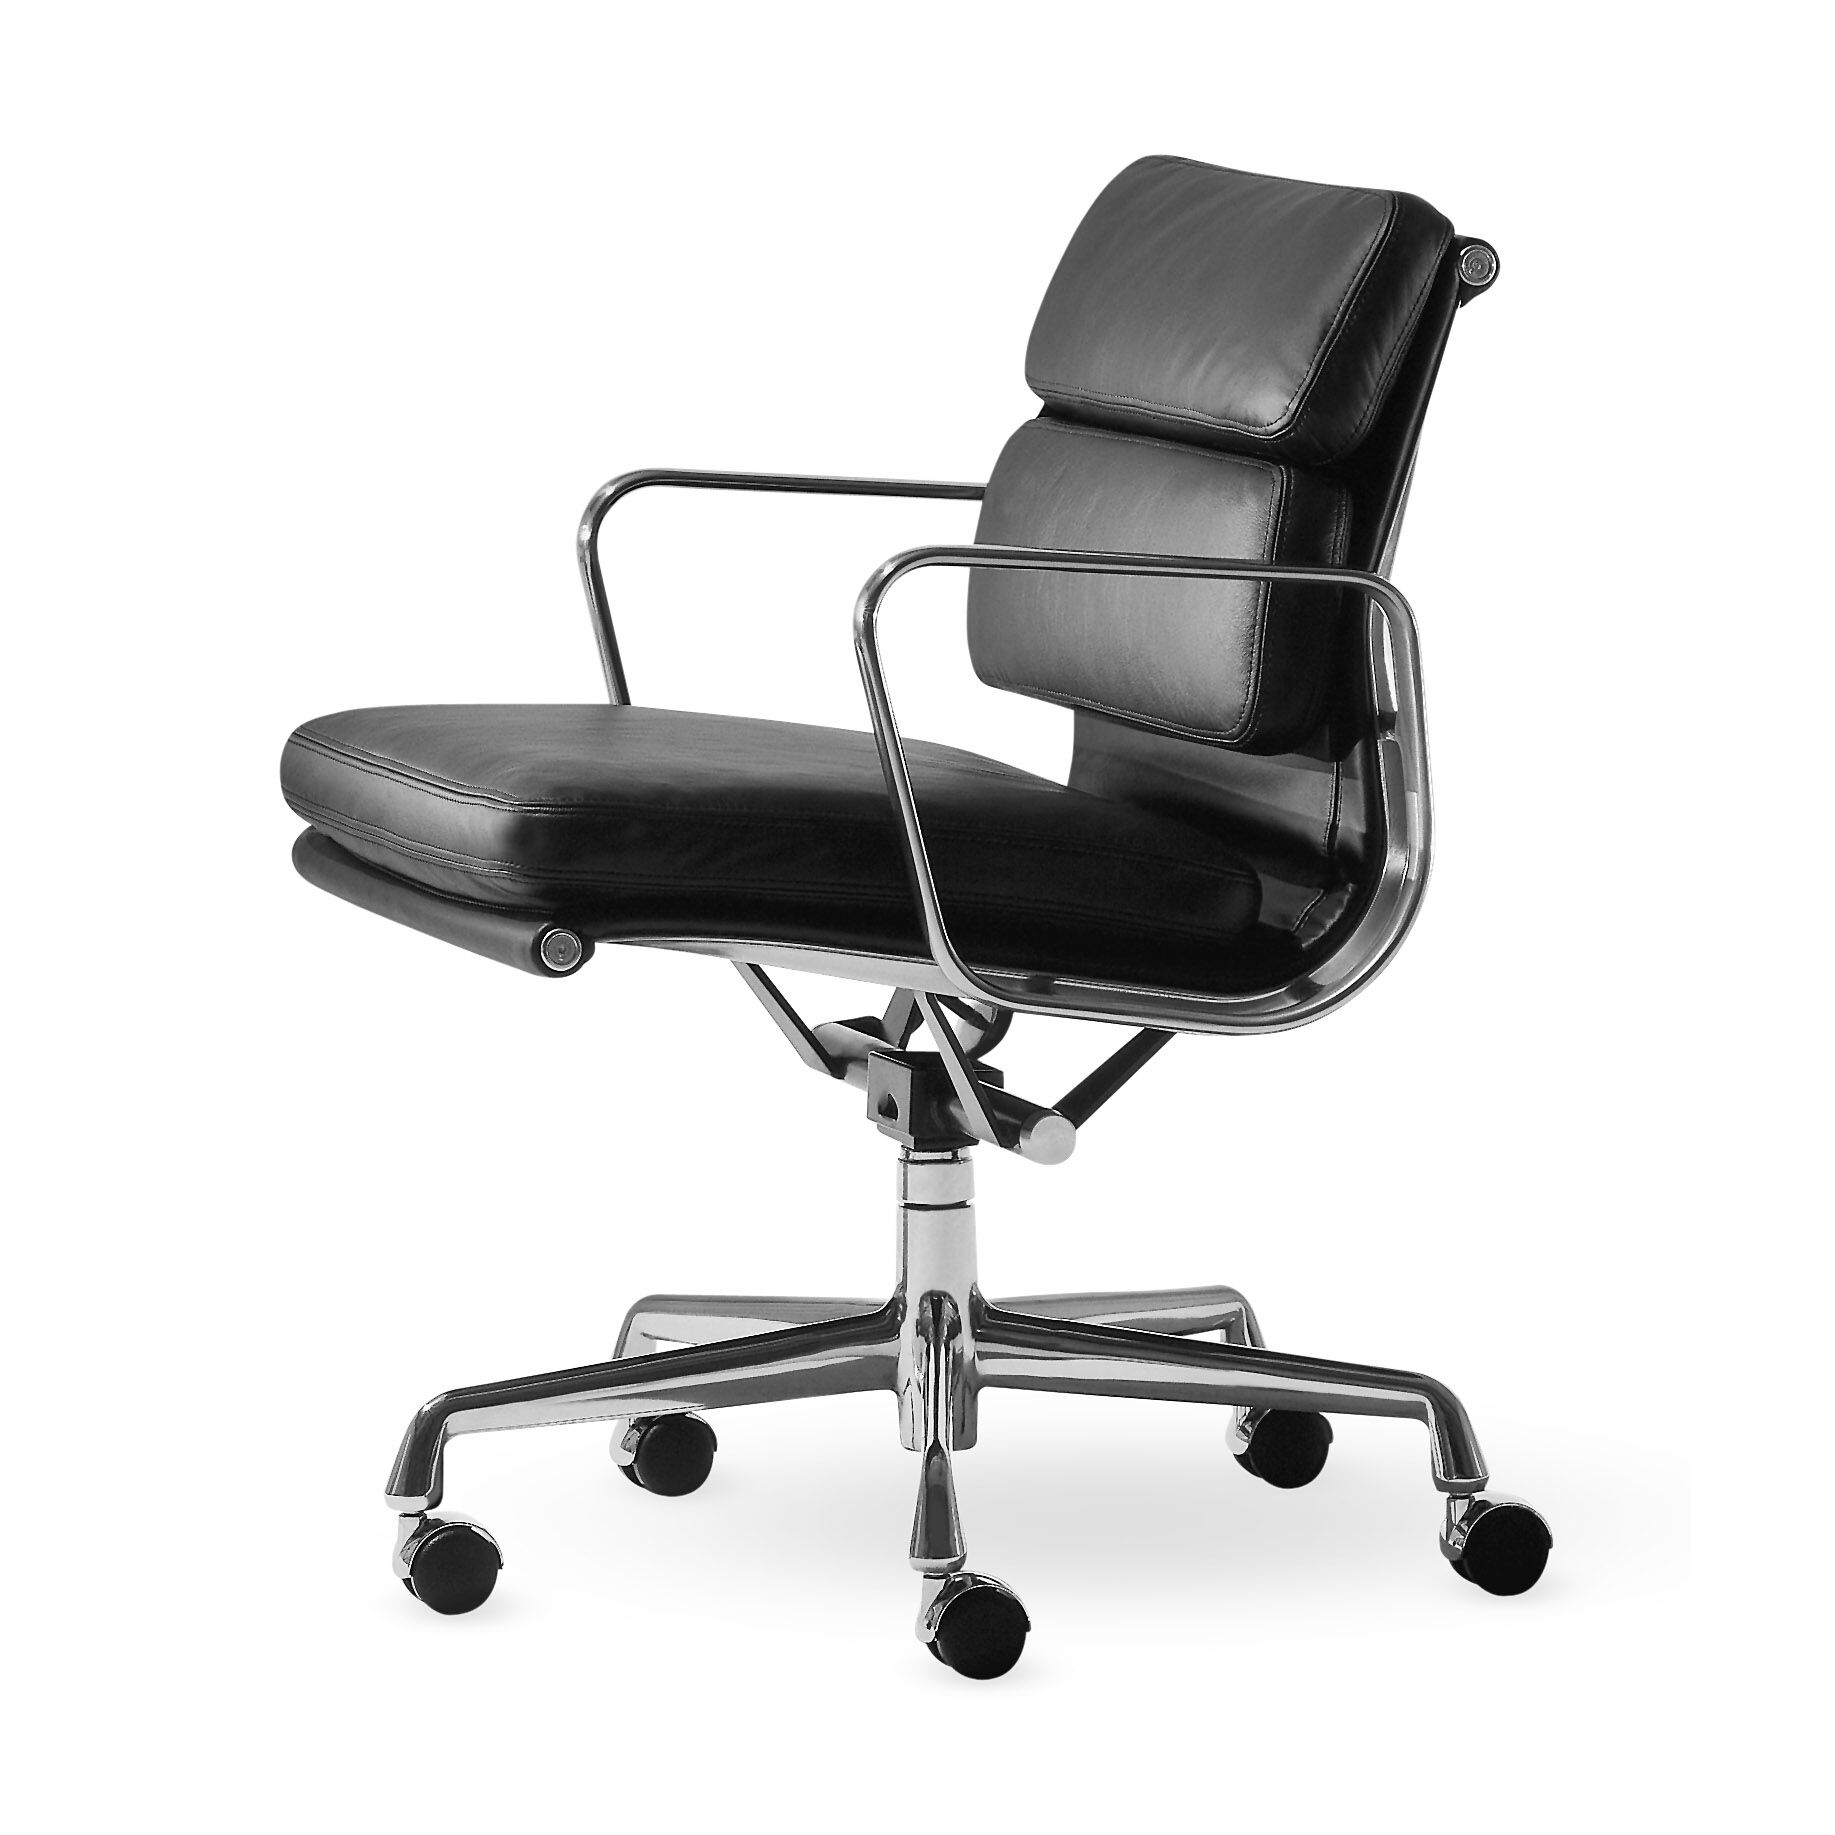 Eames Soft Pad Management Chair Eames Soft Pad Management Chair Moma Design Store